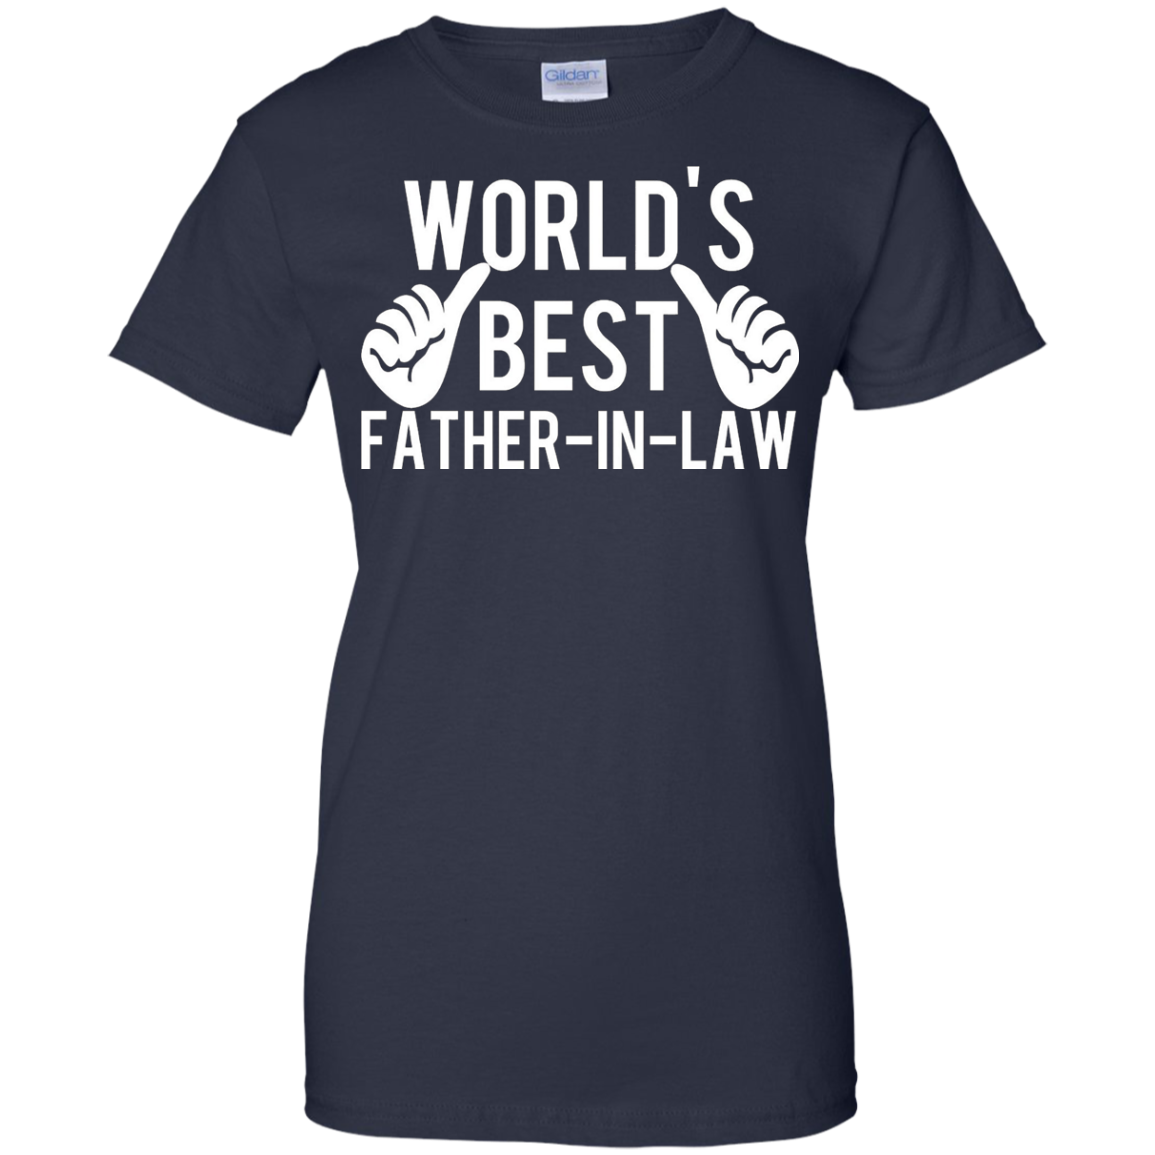 Men's World's Best Father in Law T shirt - Great gift idea